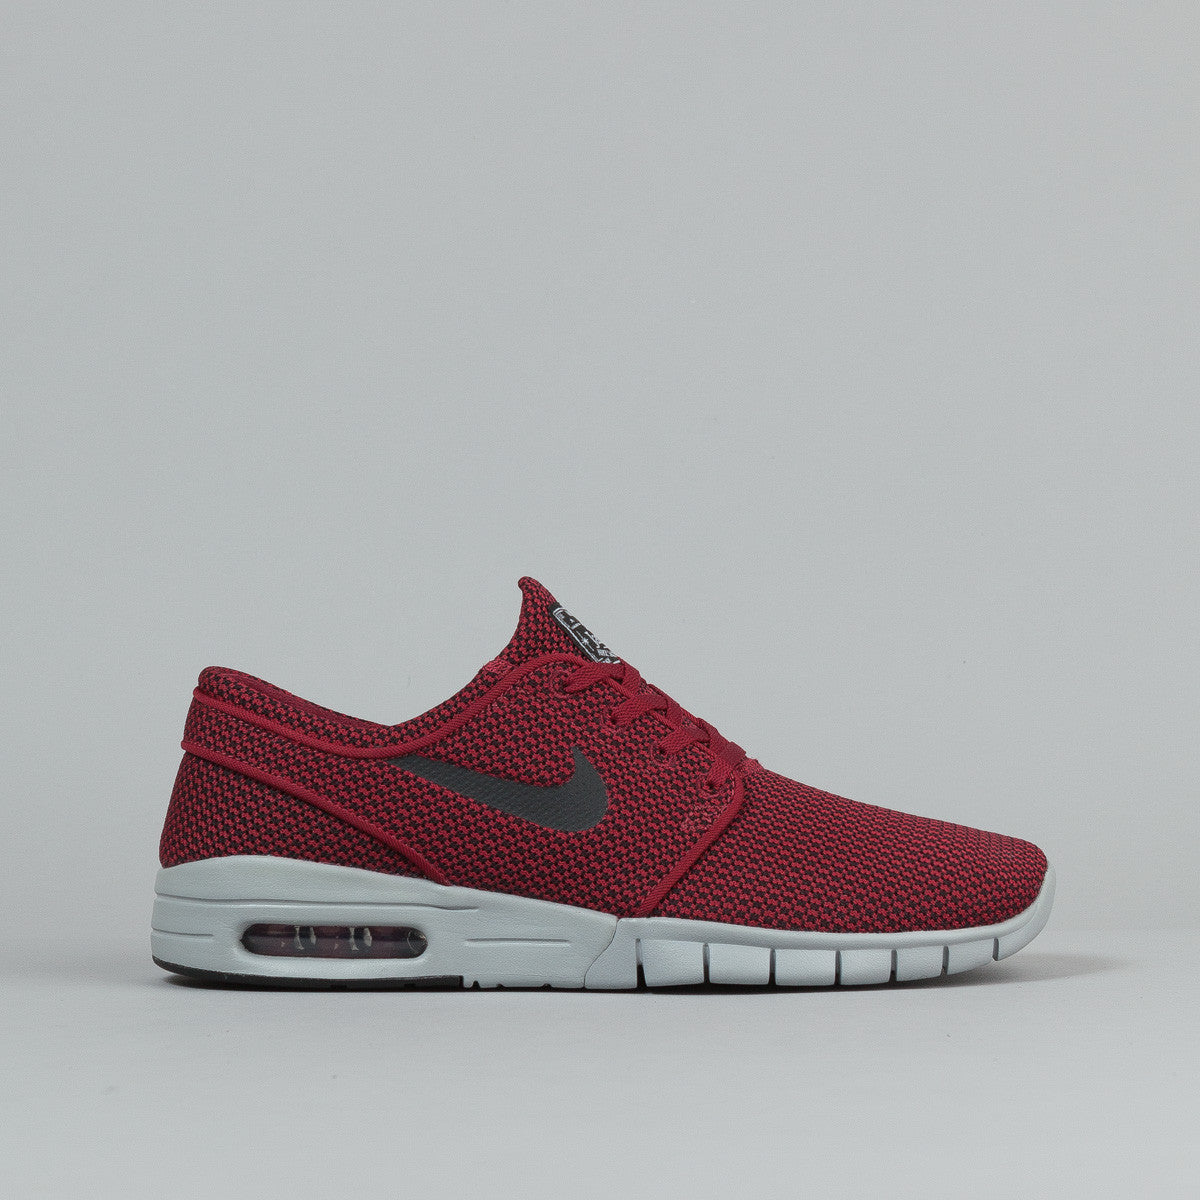 nike sb stefan janoski max shoes team red black wolf grey flatspot. Black Bedroom Furniture Sets. Home Design Ideas